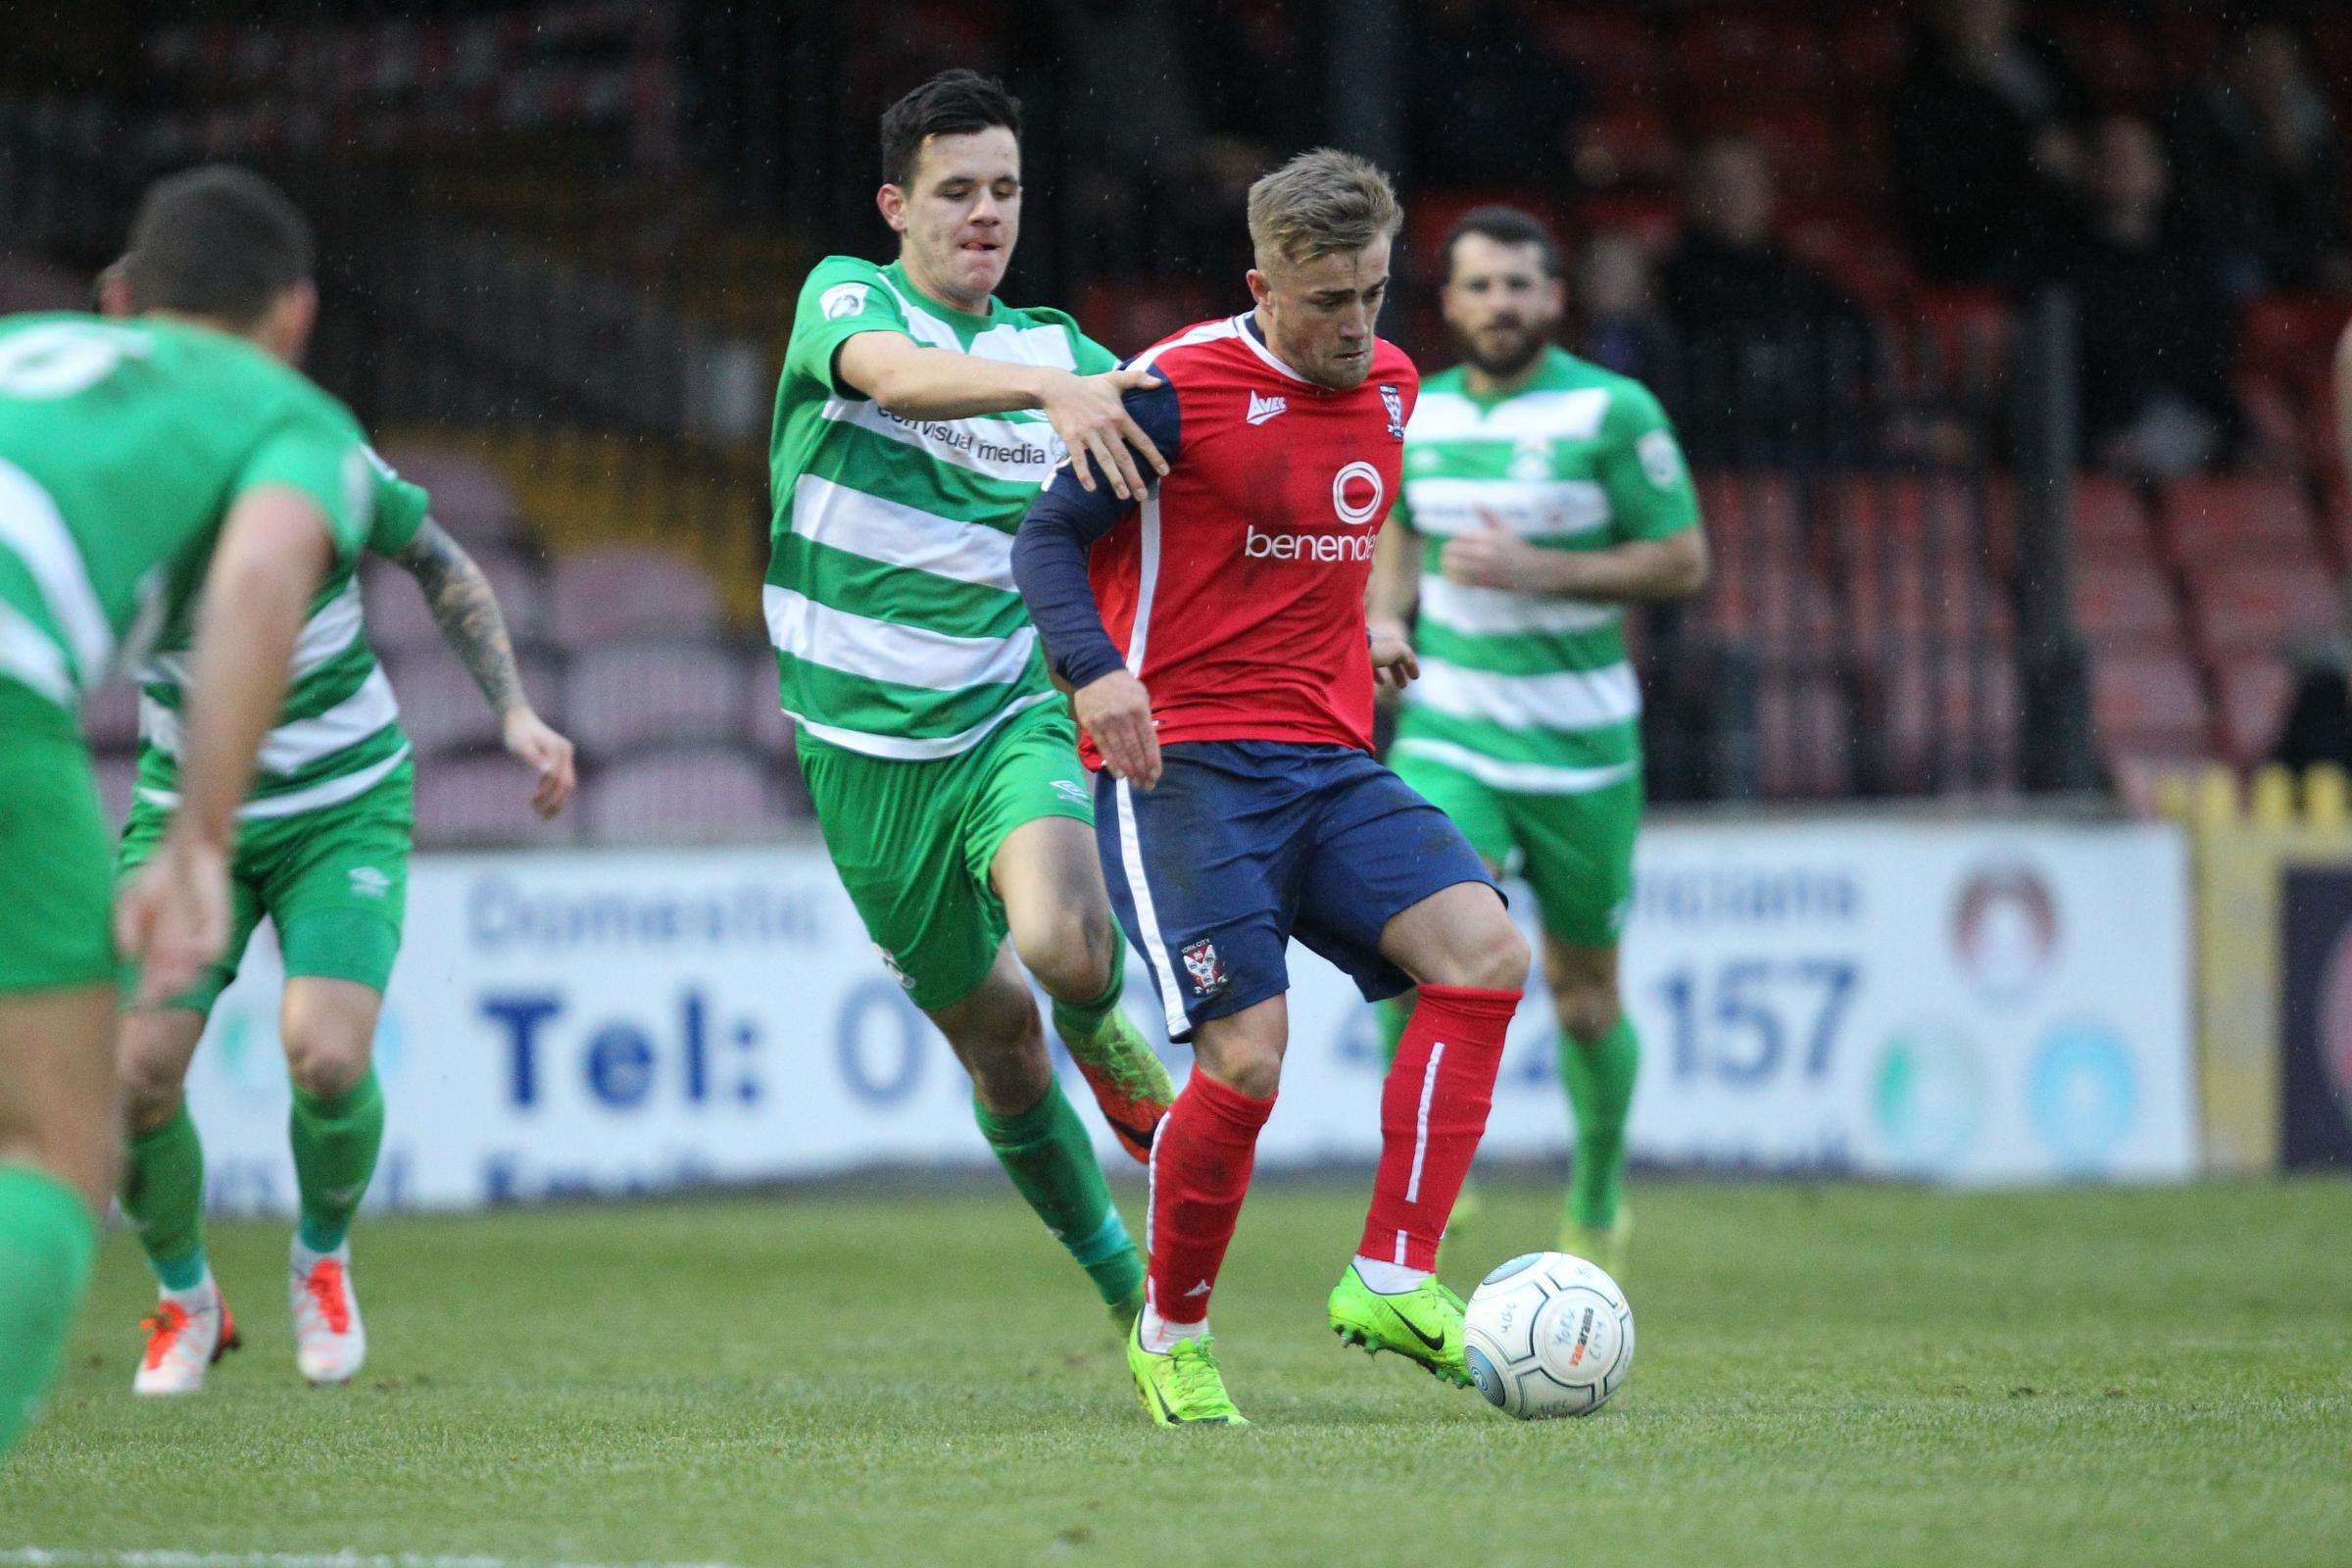 PAT ON THE BACK: York City sporting director Dave Penney has sung the praises of on-loan Middlesbrough midfielder Alex Pattison, who the club would like to retain until the end of the season